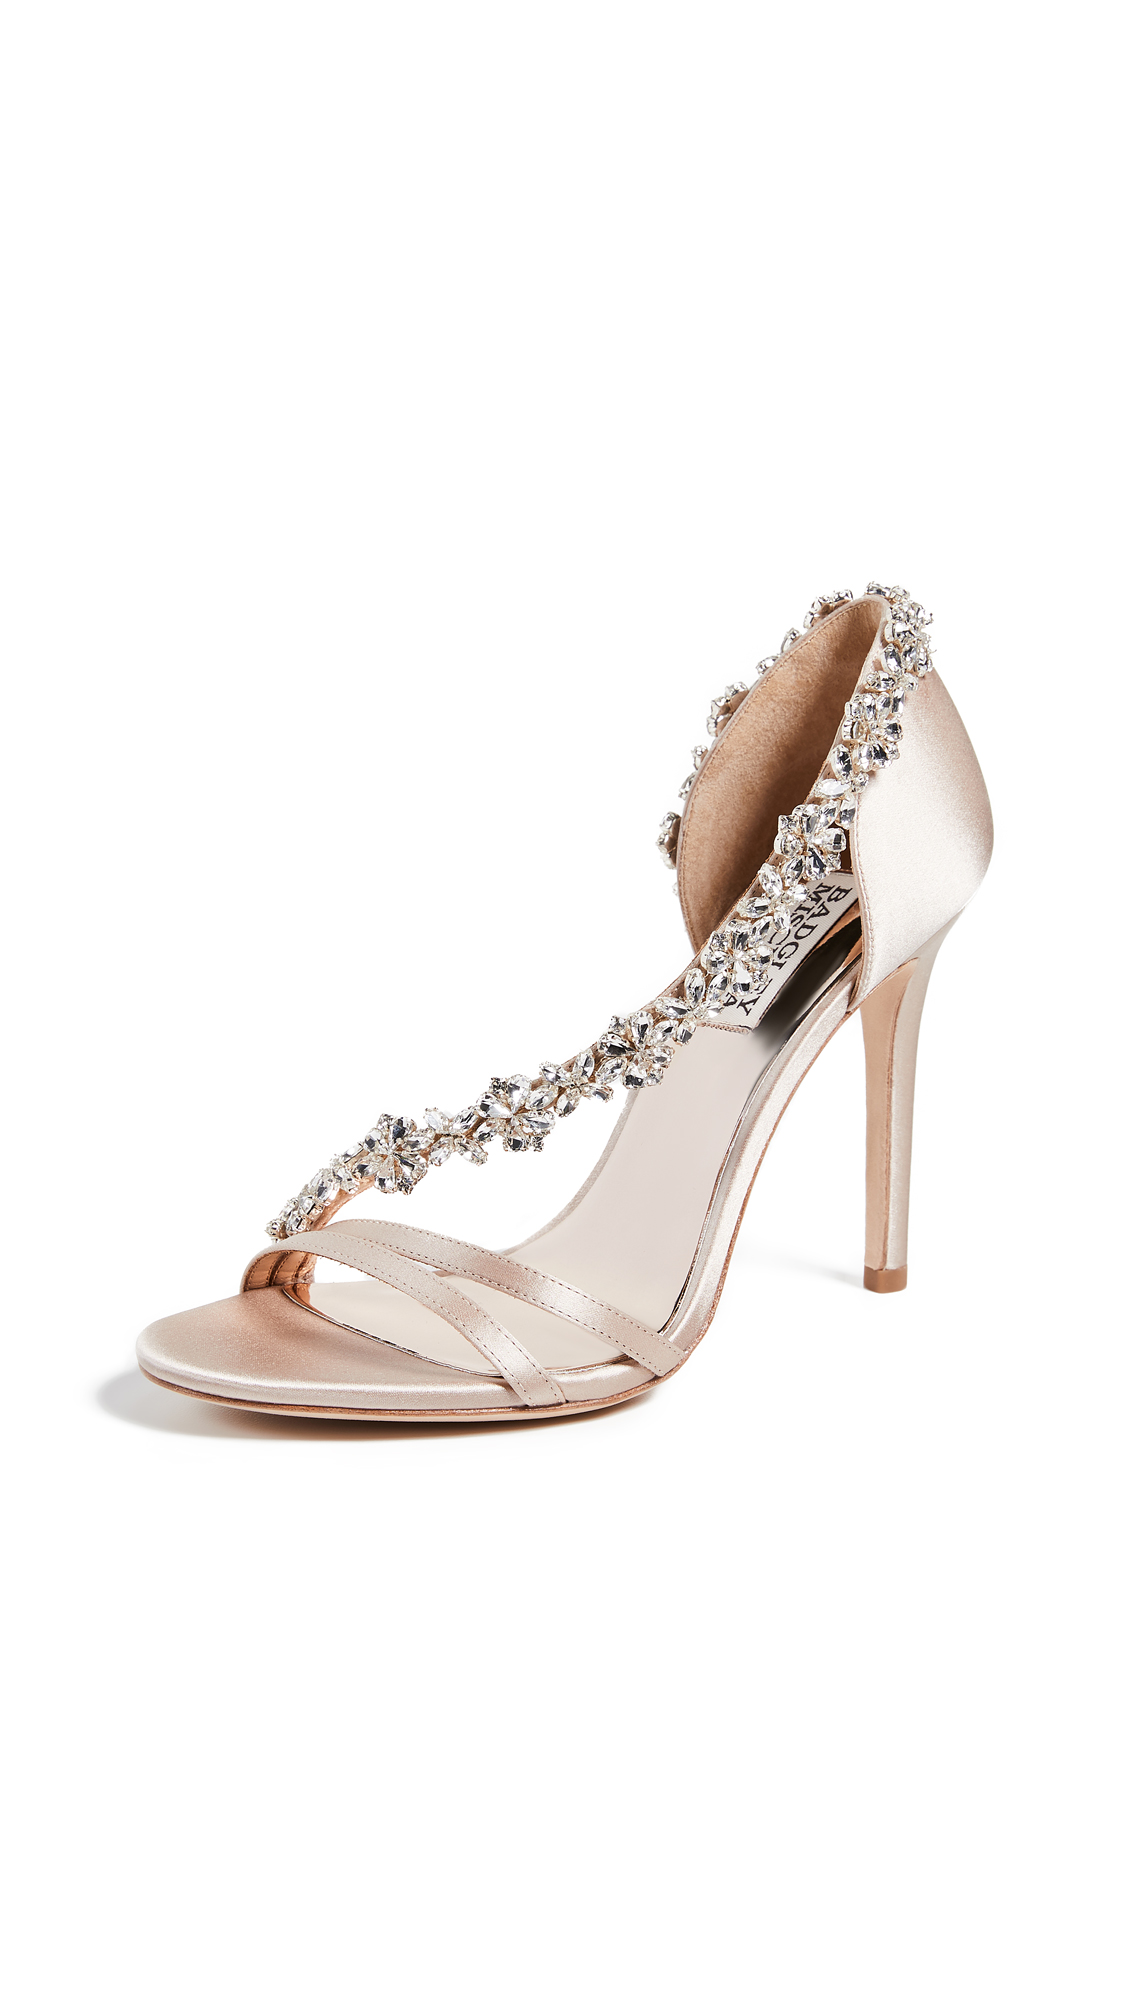 Badgley Mischka Voletta Asymmetrical Sandals